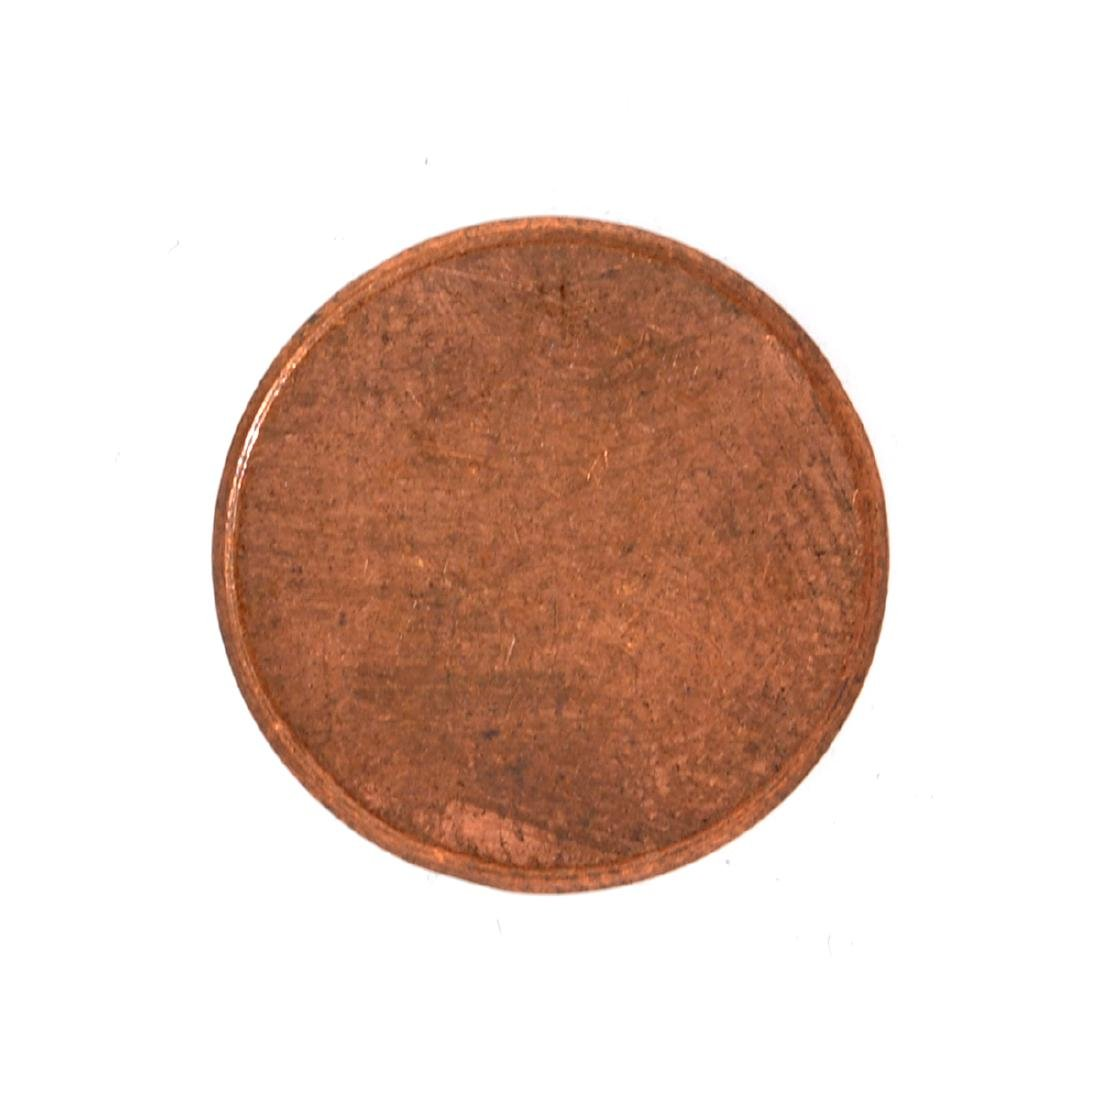 Mint U.S. 1 Cent Blank Planchet Coin